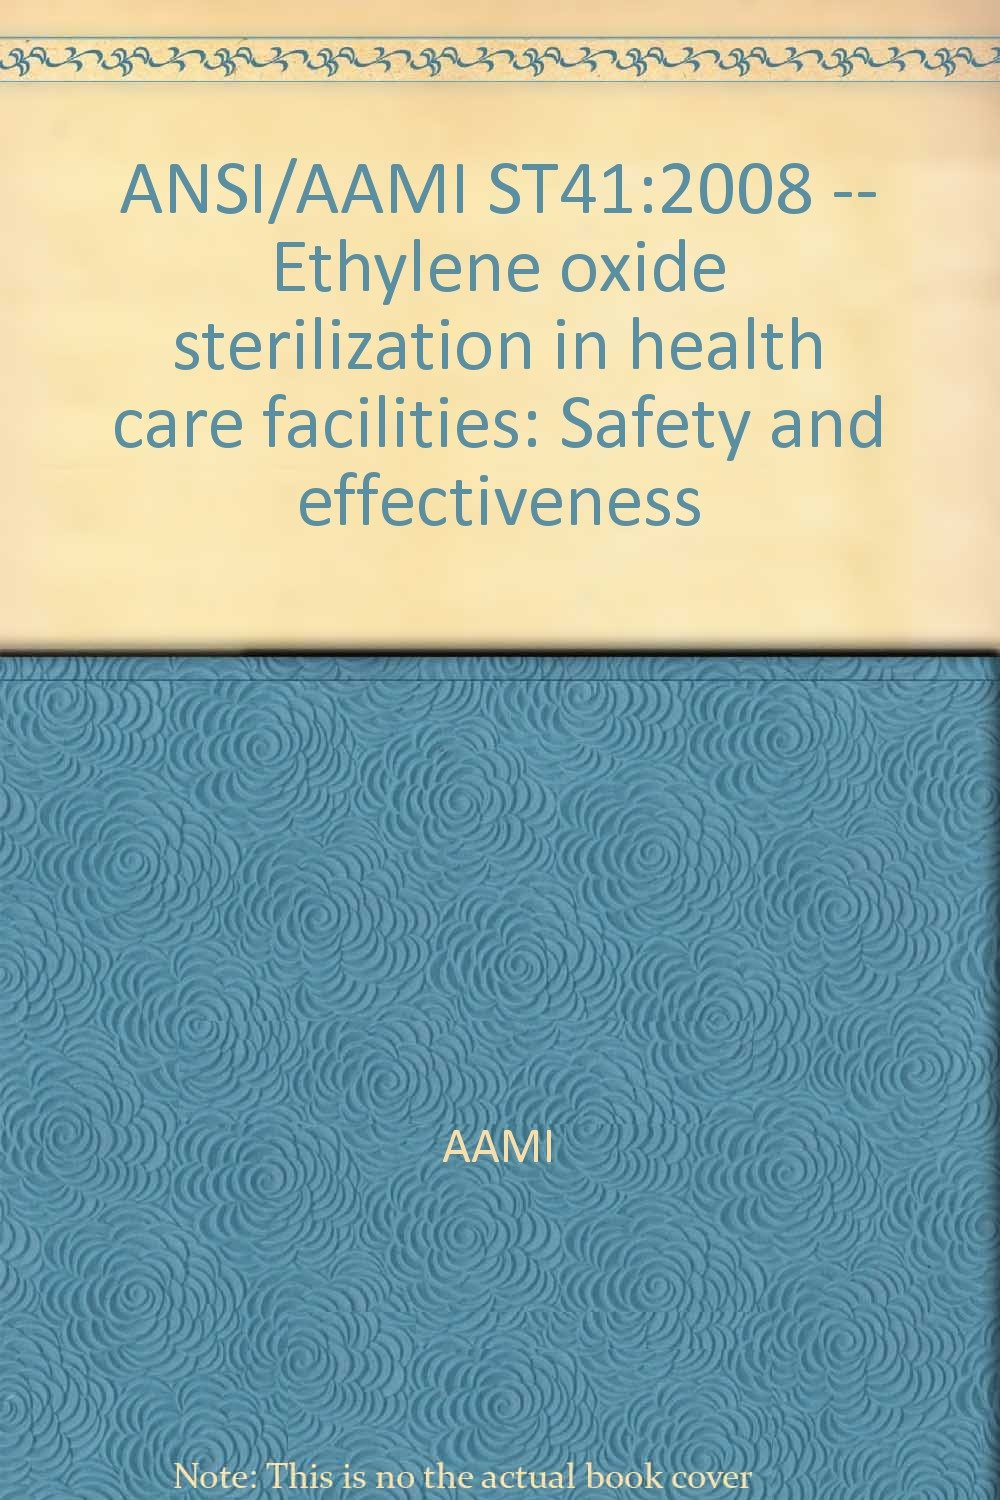 ANSI/AAMI ST41:2008 -- Ethylene oxide sterilization in health care facilities: Safety and effectiveness ebook